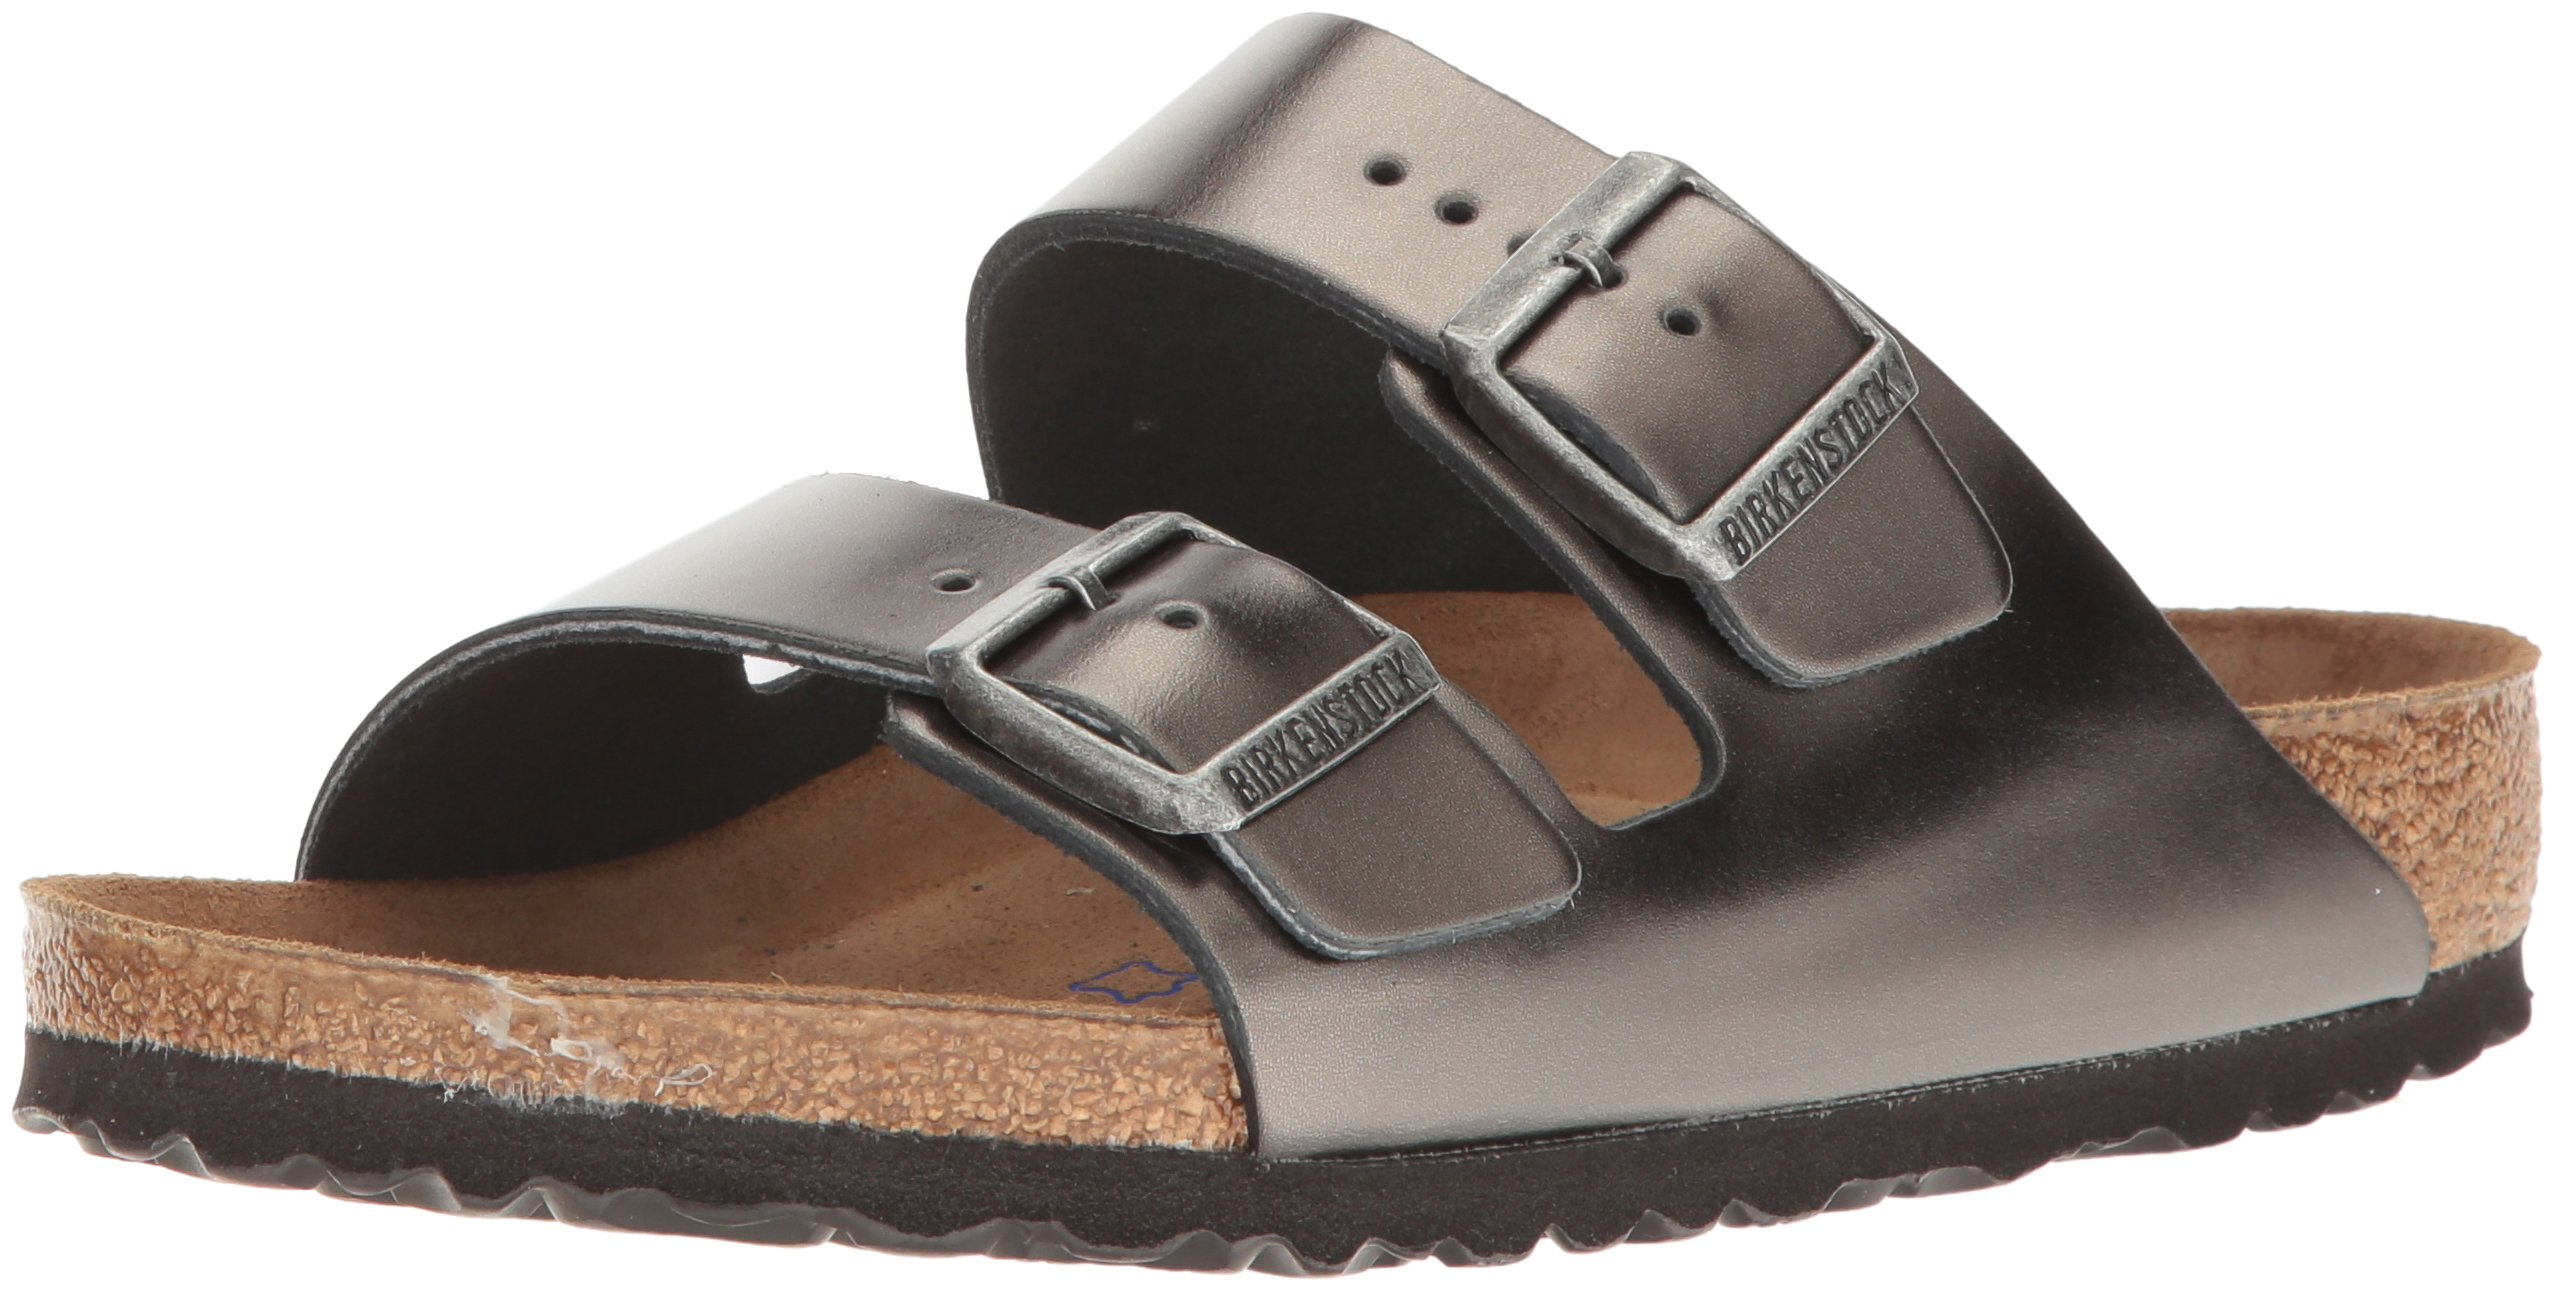 Birkenstock Unisex Arizona Metallic Anthracite Leather Sandals - 39 M EU / 8-8.5 B(M) US